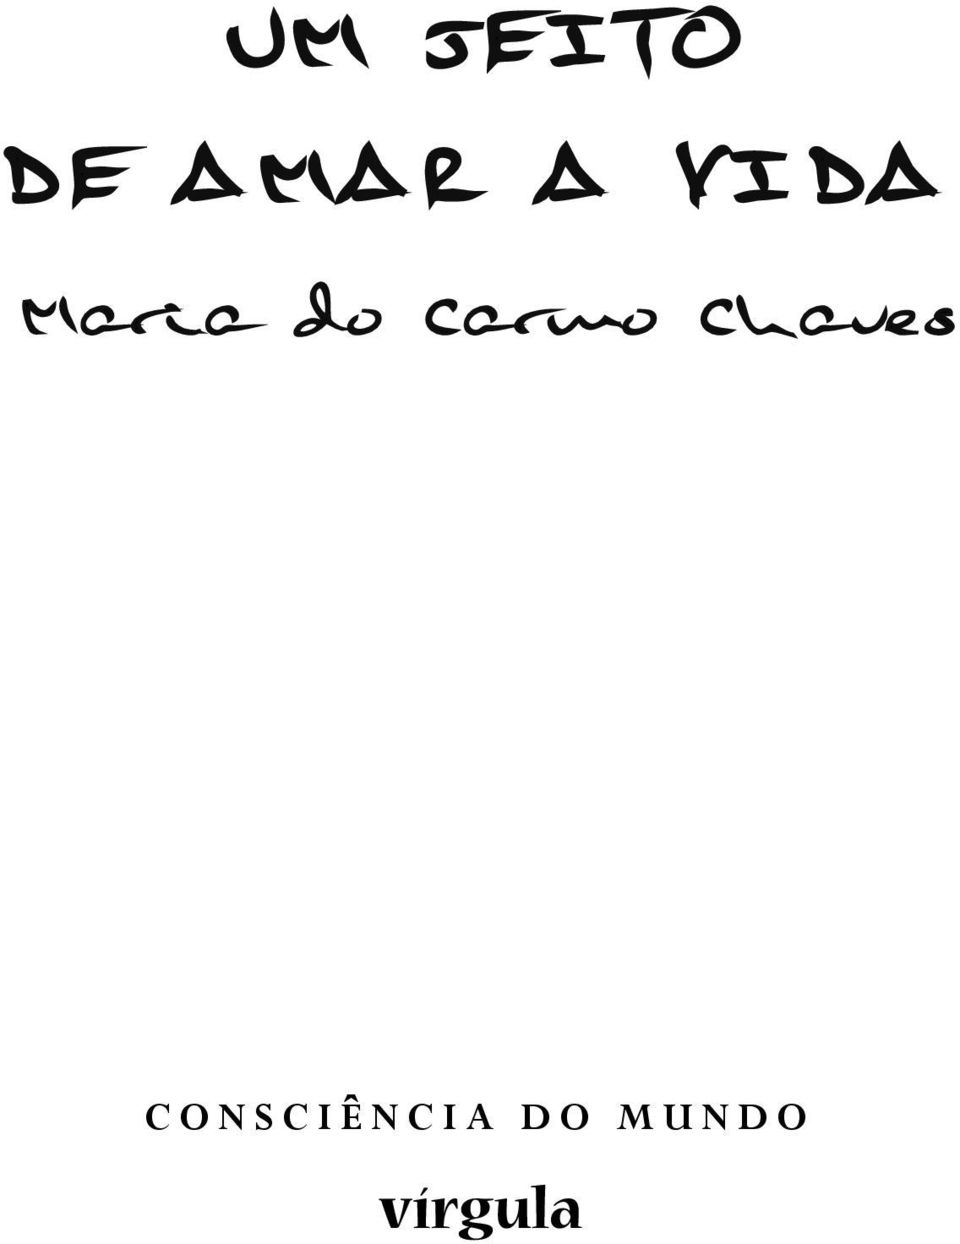 Carmo Chaves